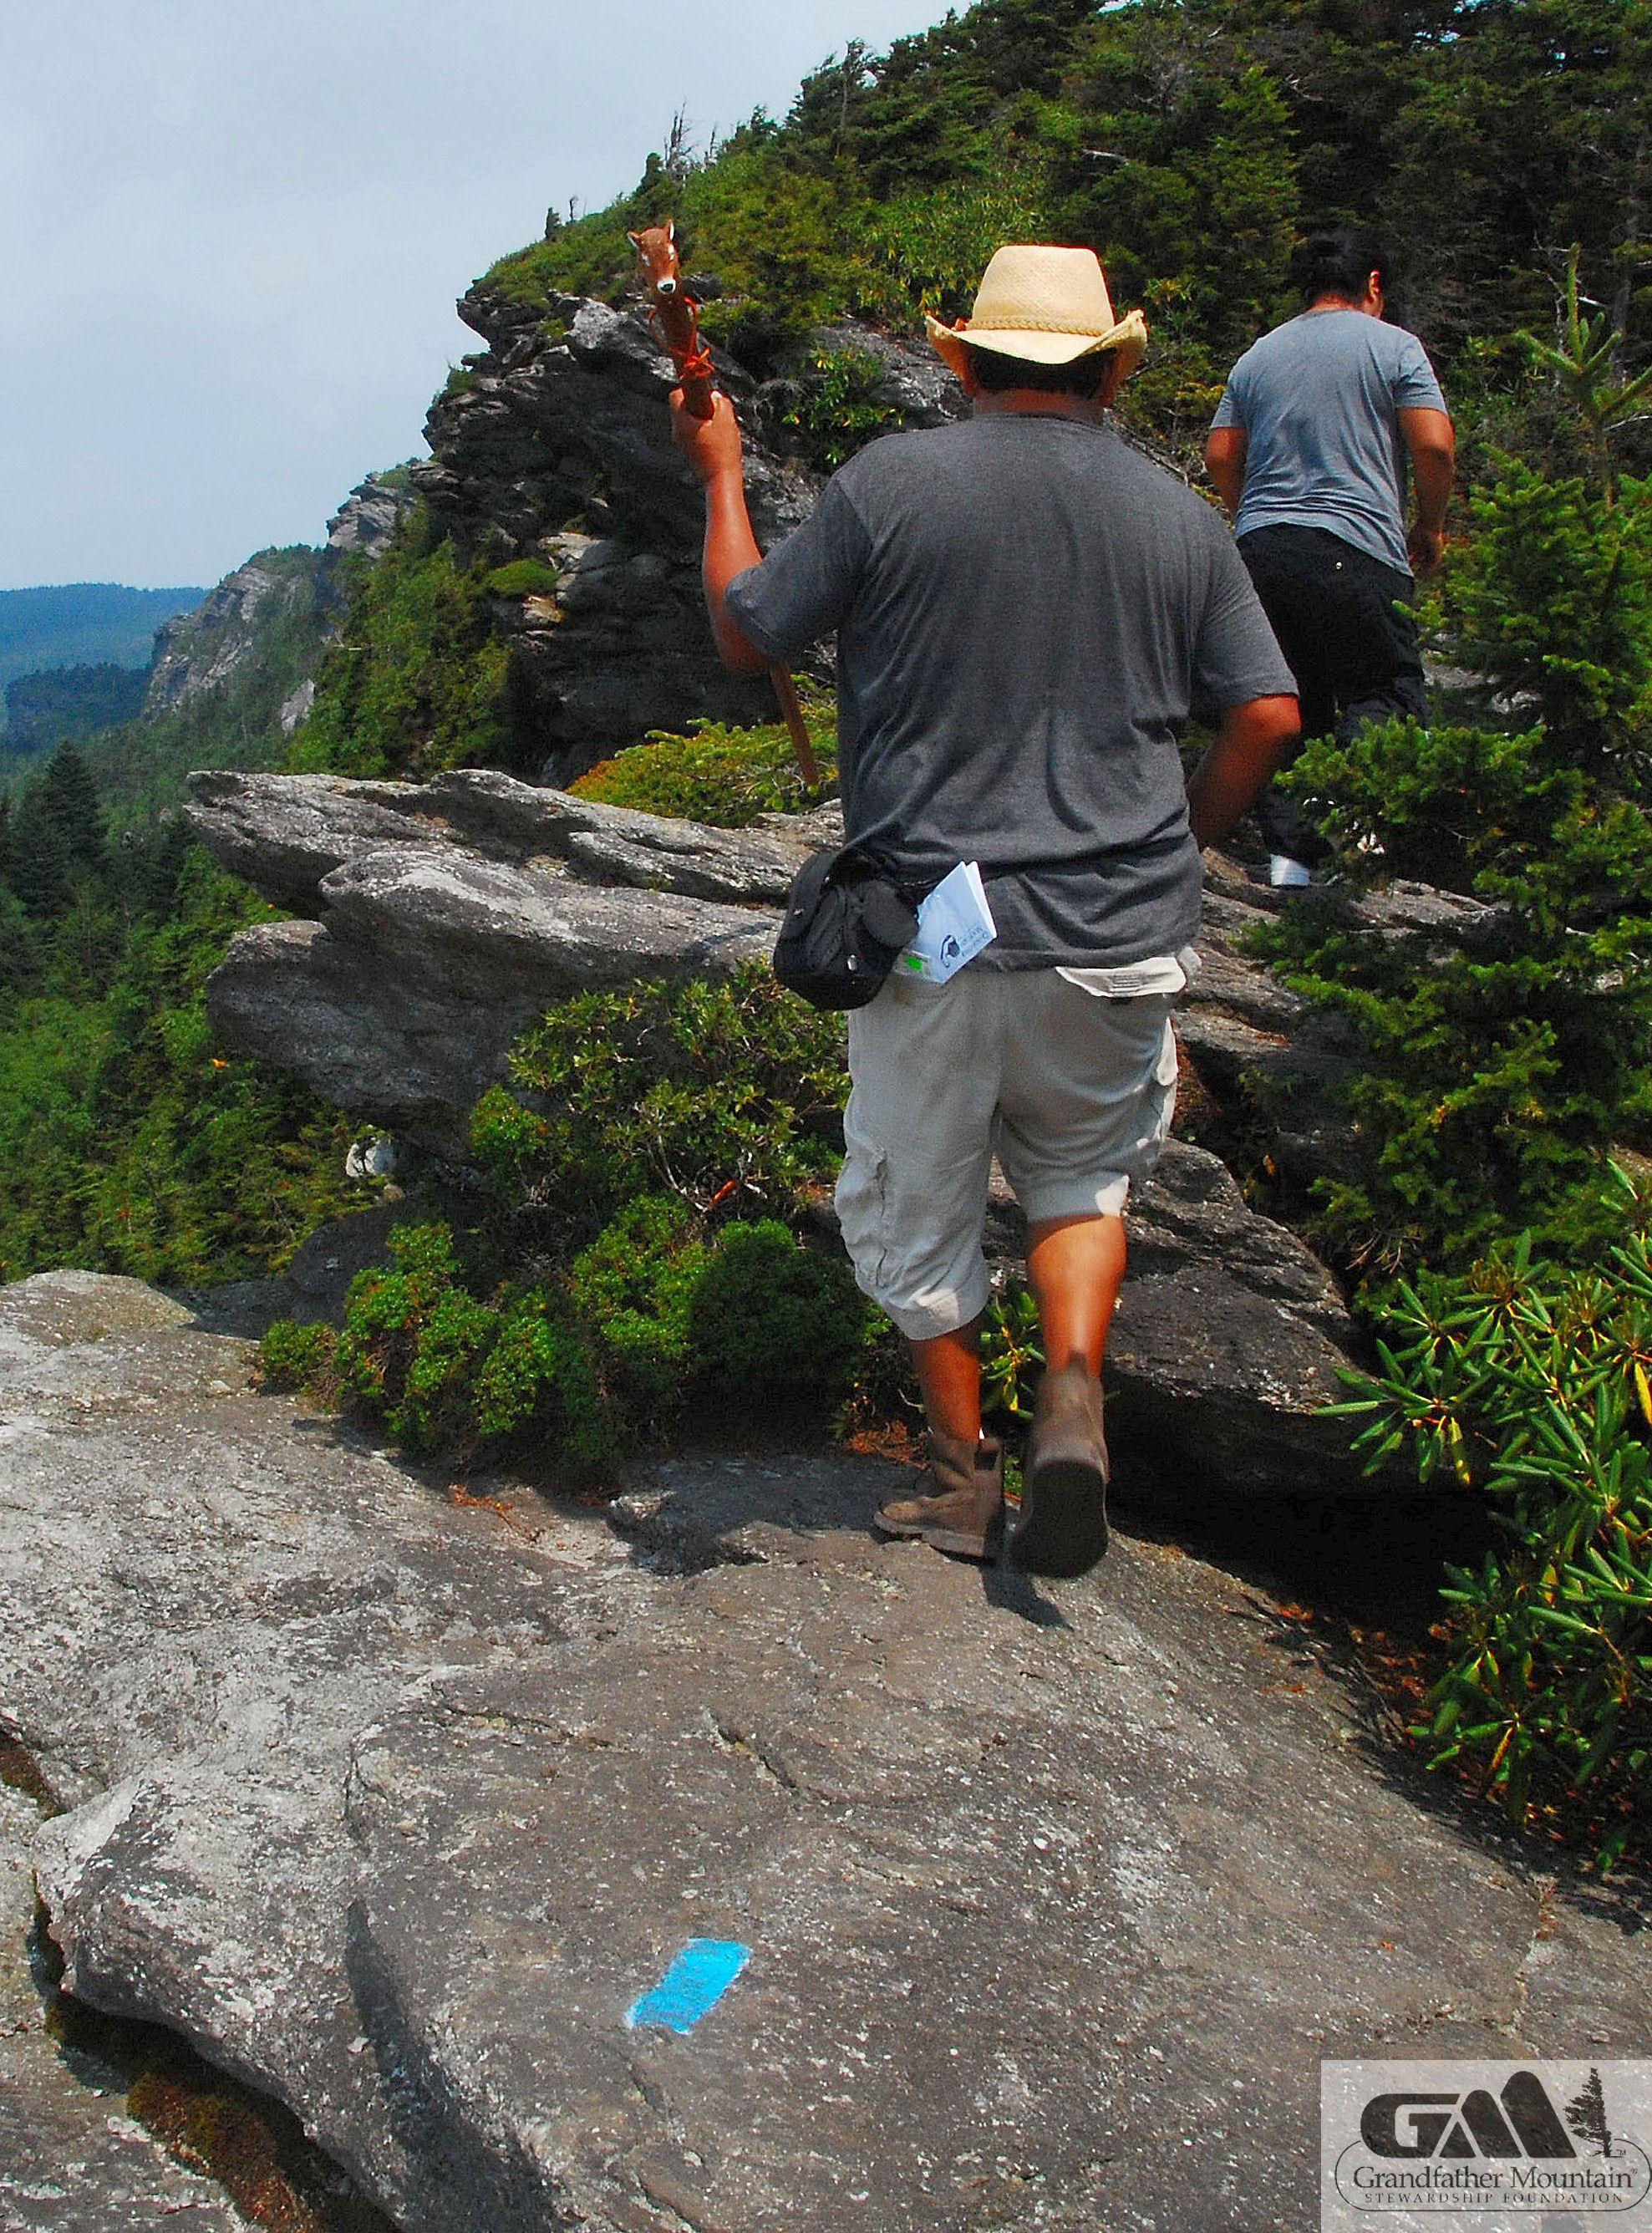 Hiking gear, the proper clothes and trail map are a must for ...